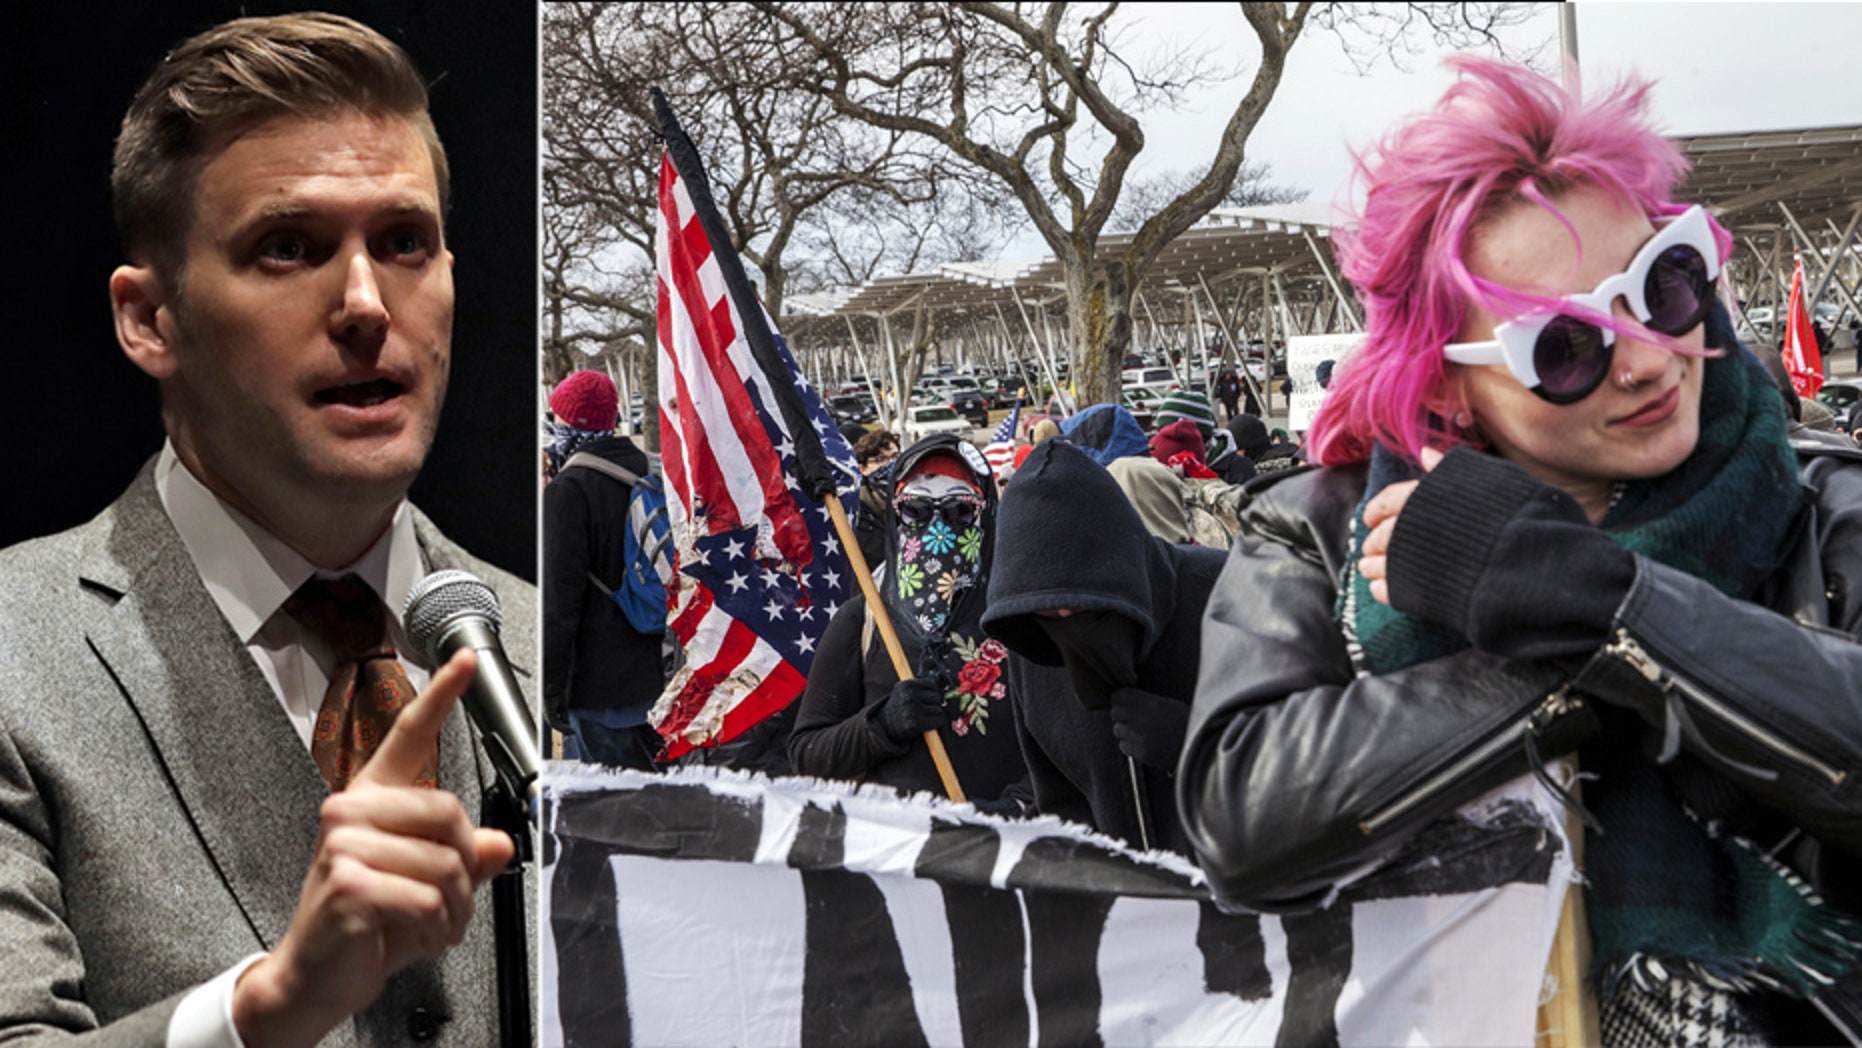 """Activists were reported chanting """"No Nazis, no KKK, no fascist USA"""" as well as """"Punch a Nazi"""" while protesting outside the speech of avowed white nationalist Richard Spencer outside Michigan State University Monday."""